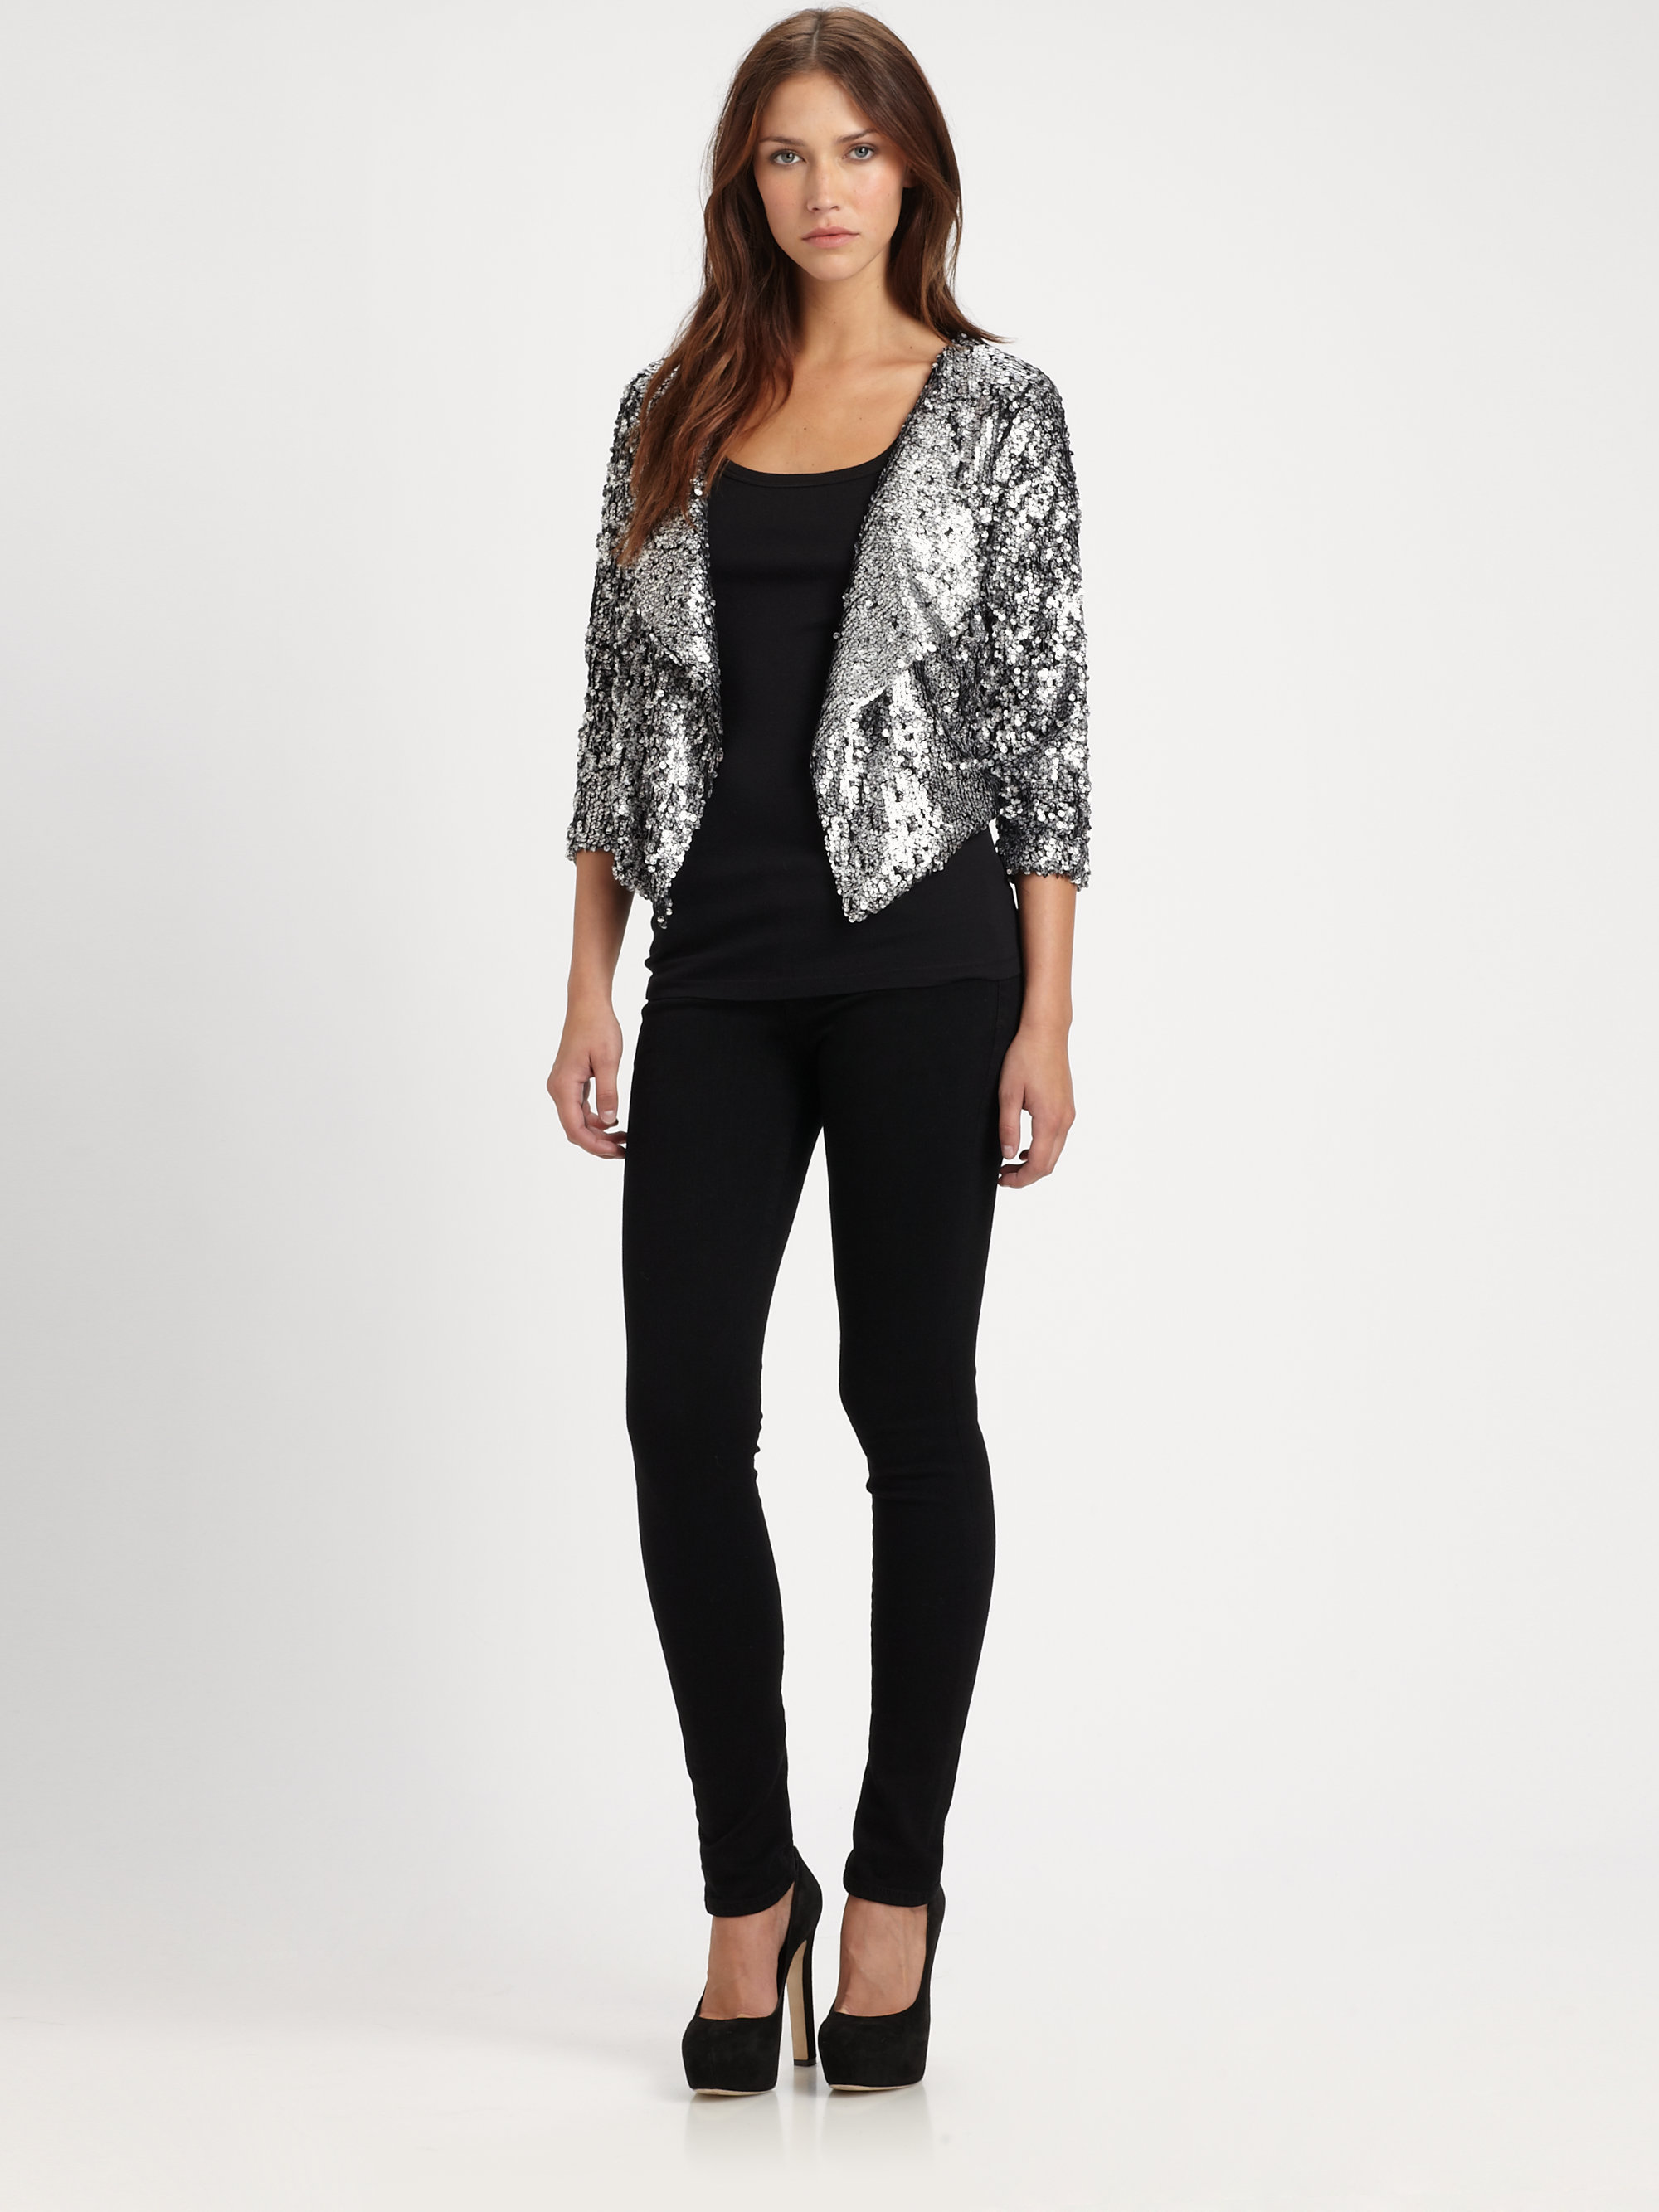 05875f77 T-bags Cropped Sequin Jacket in Metallic - Lyst